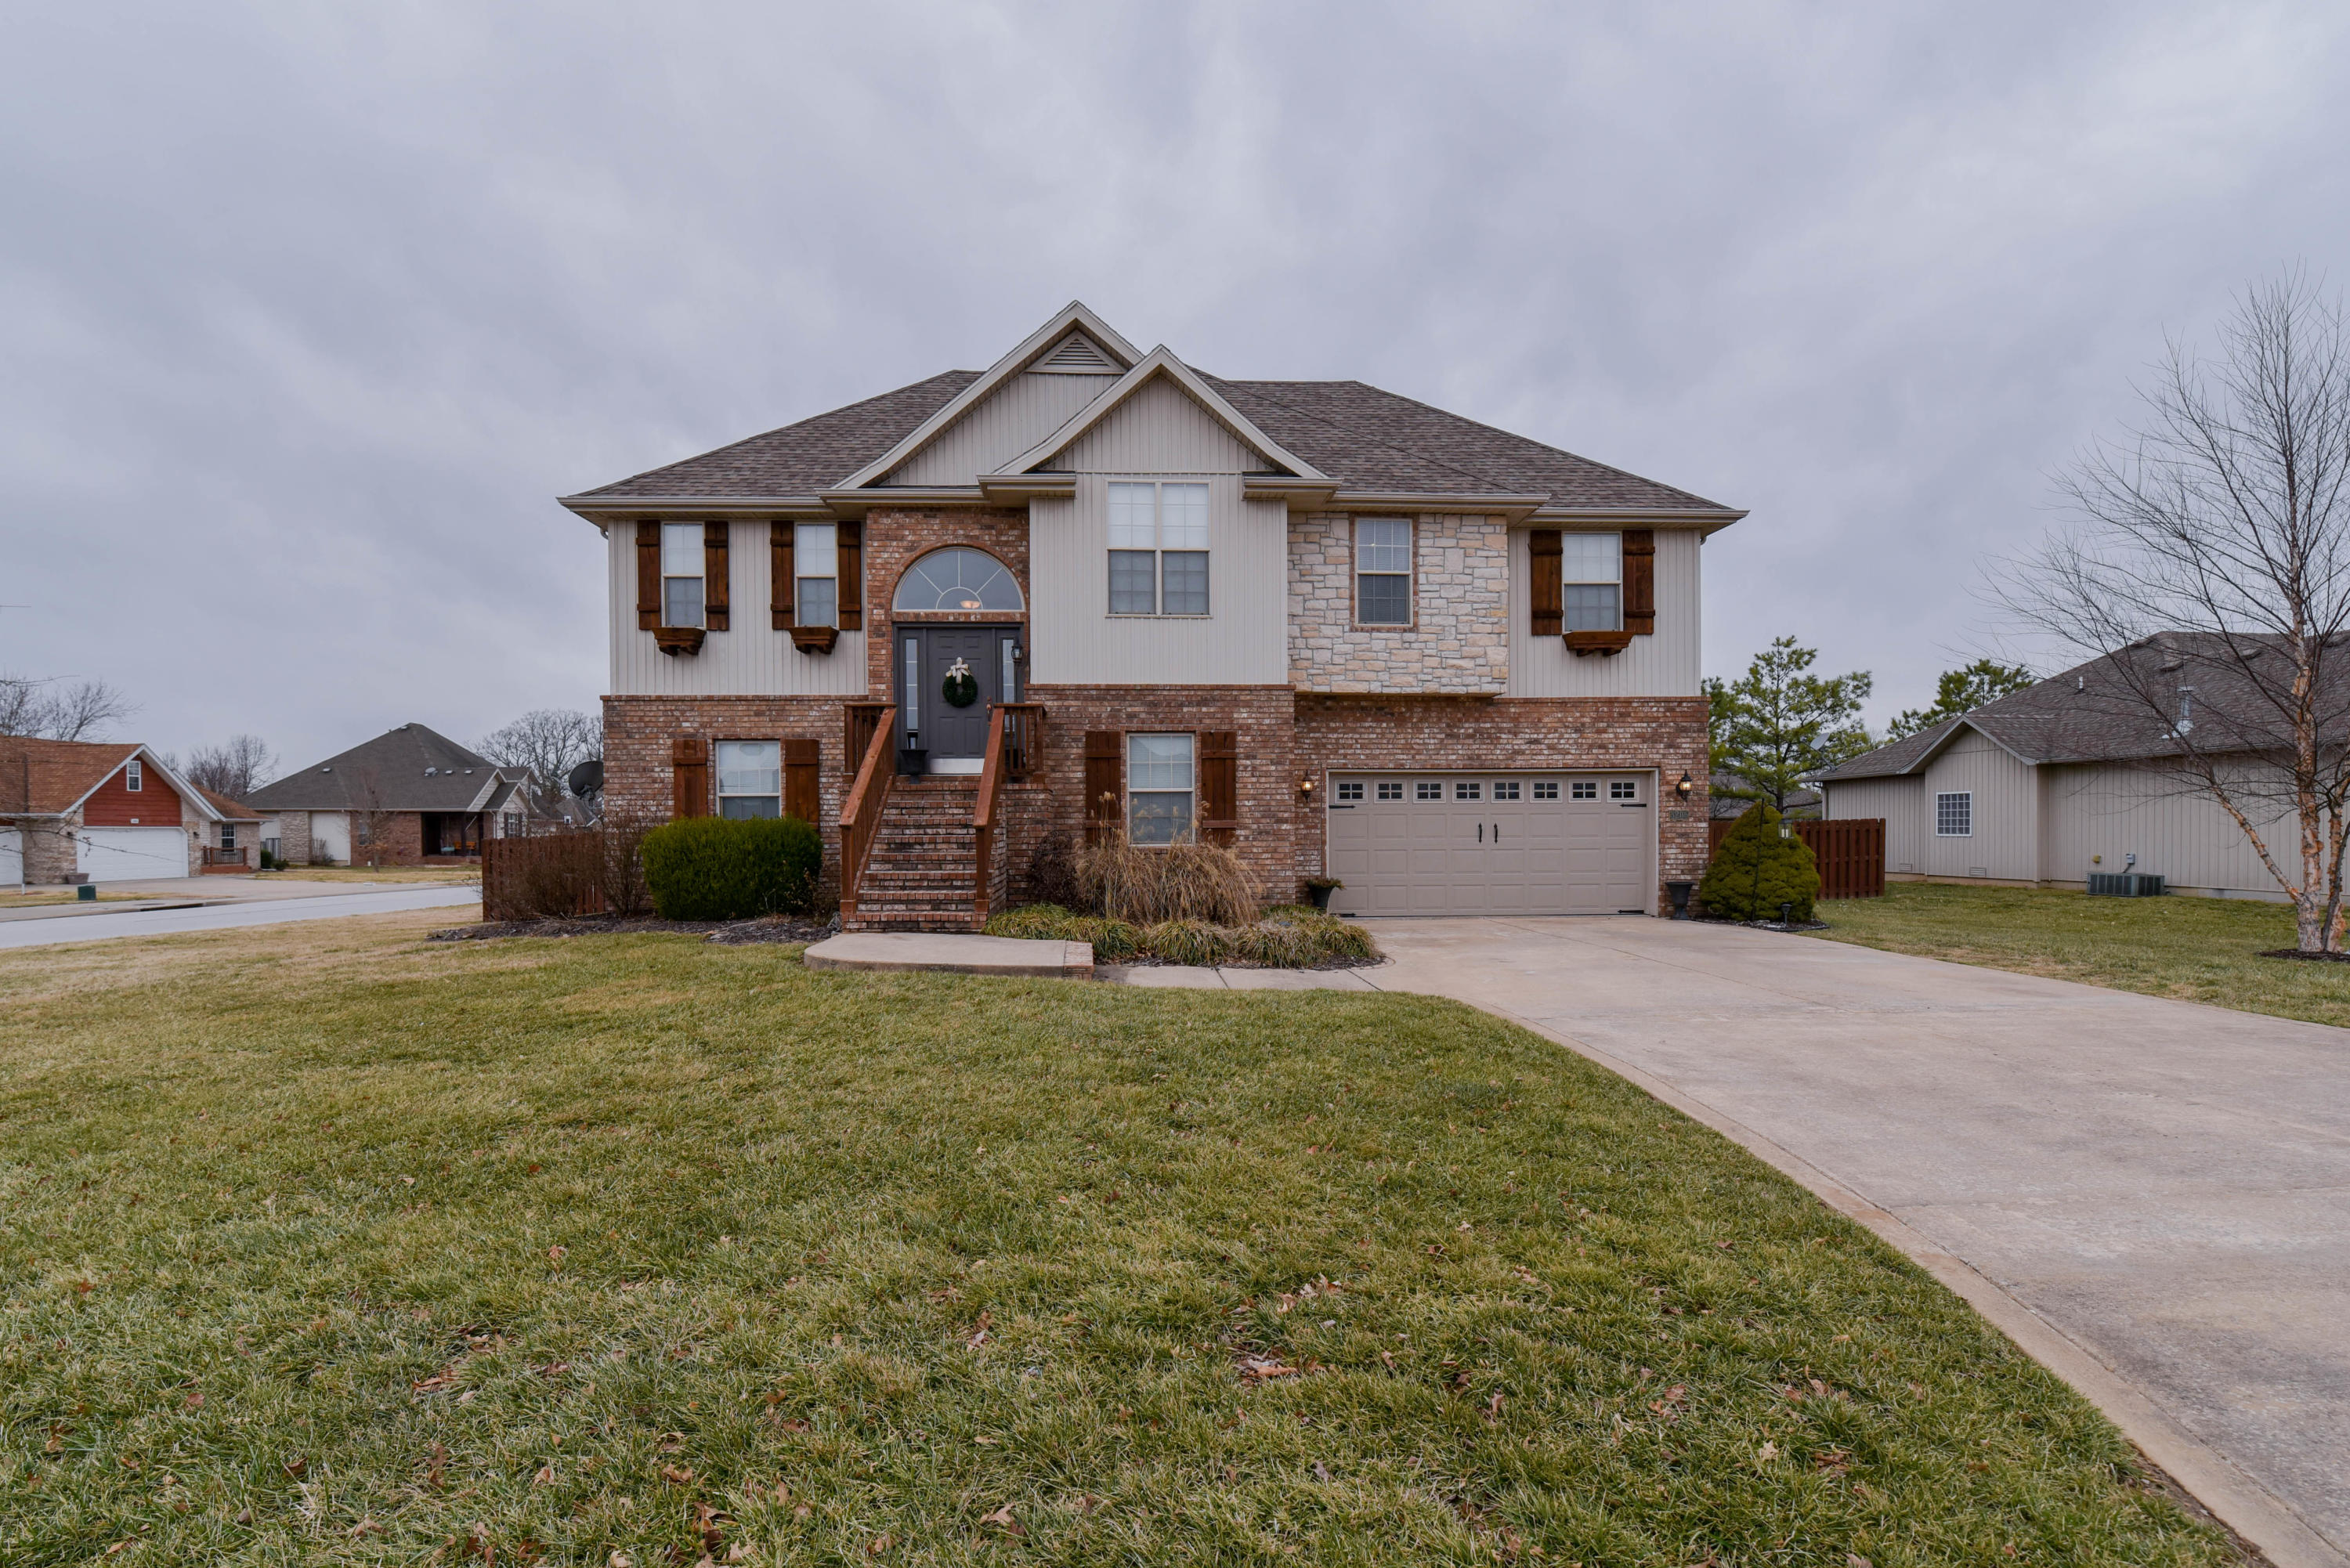 5205 North 11TH Avenue Ozark, MO 65721